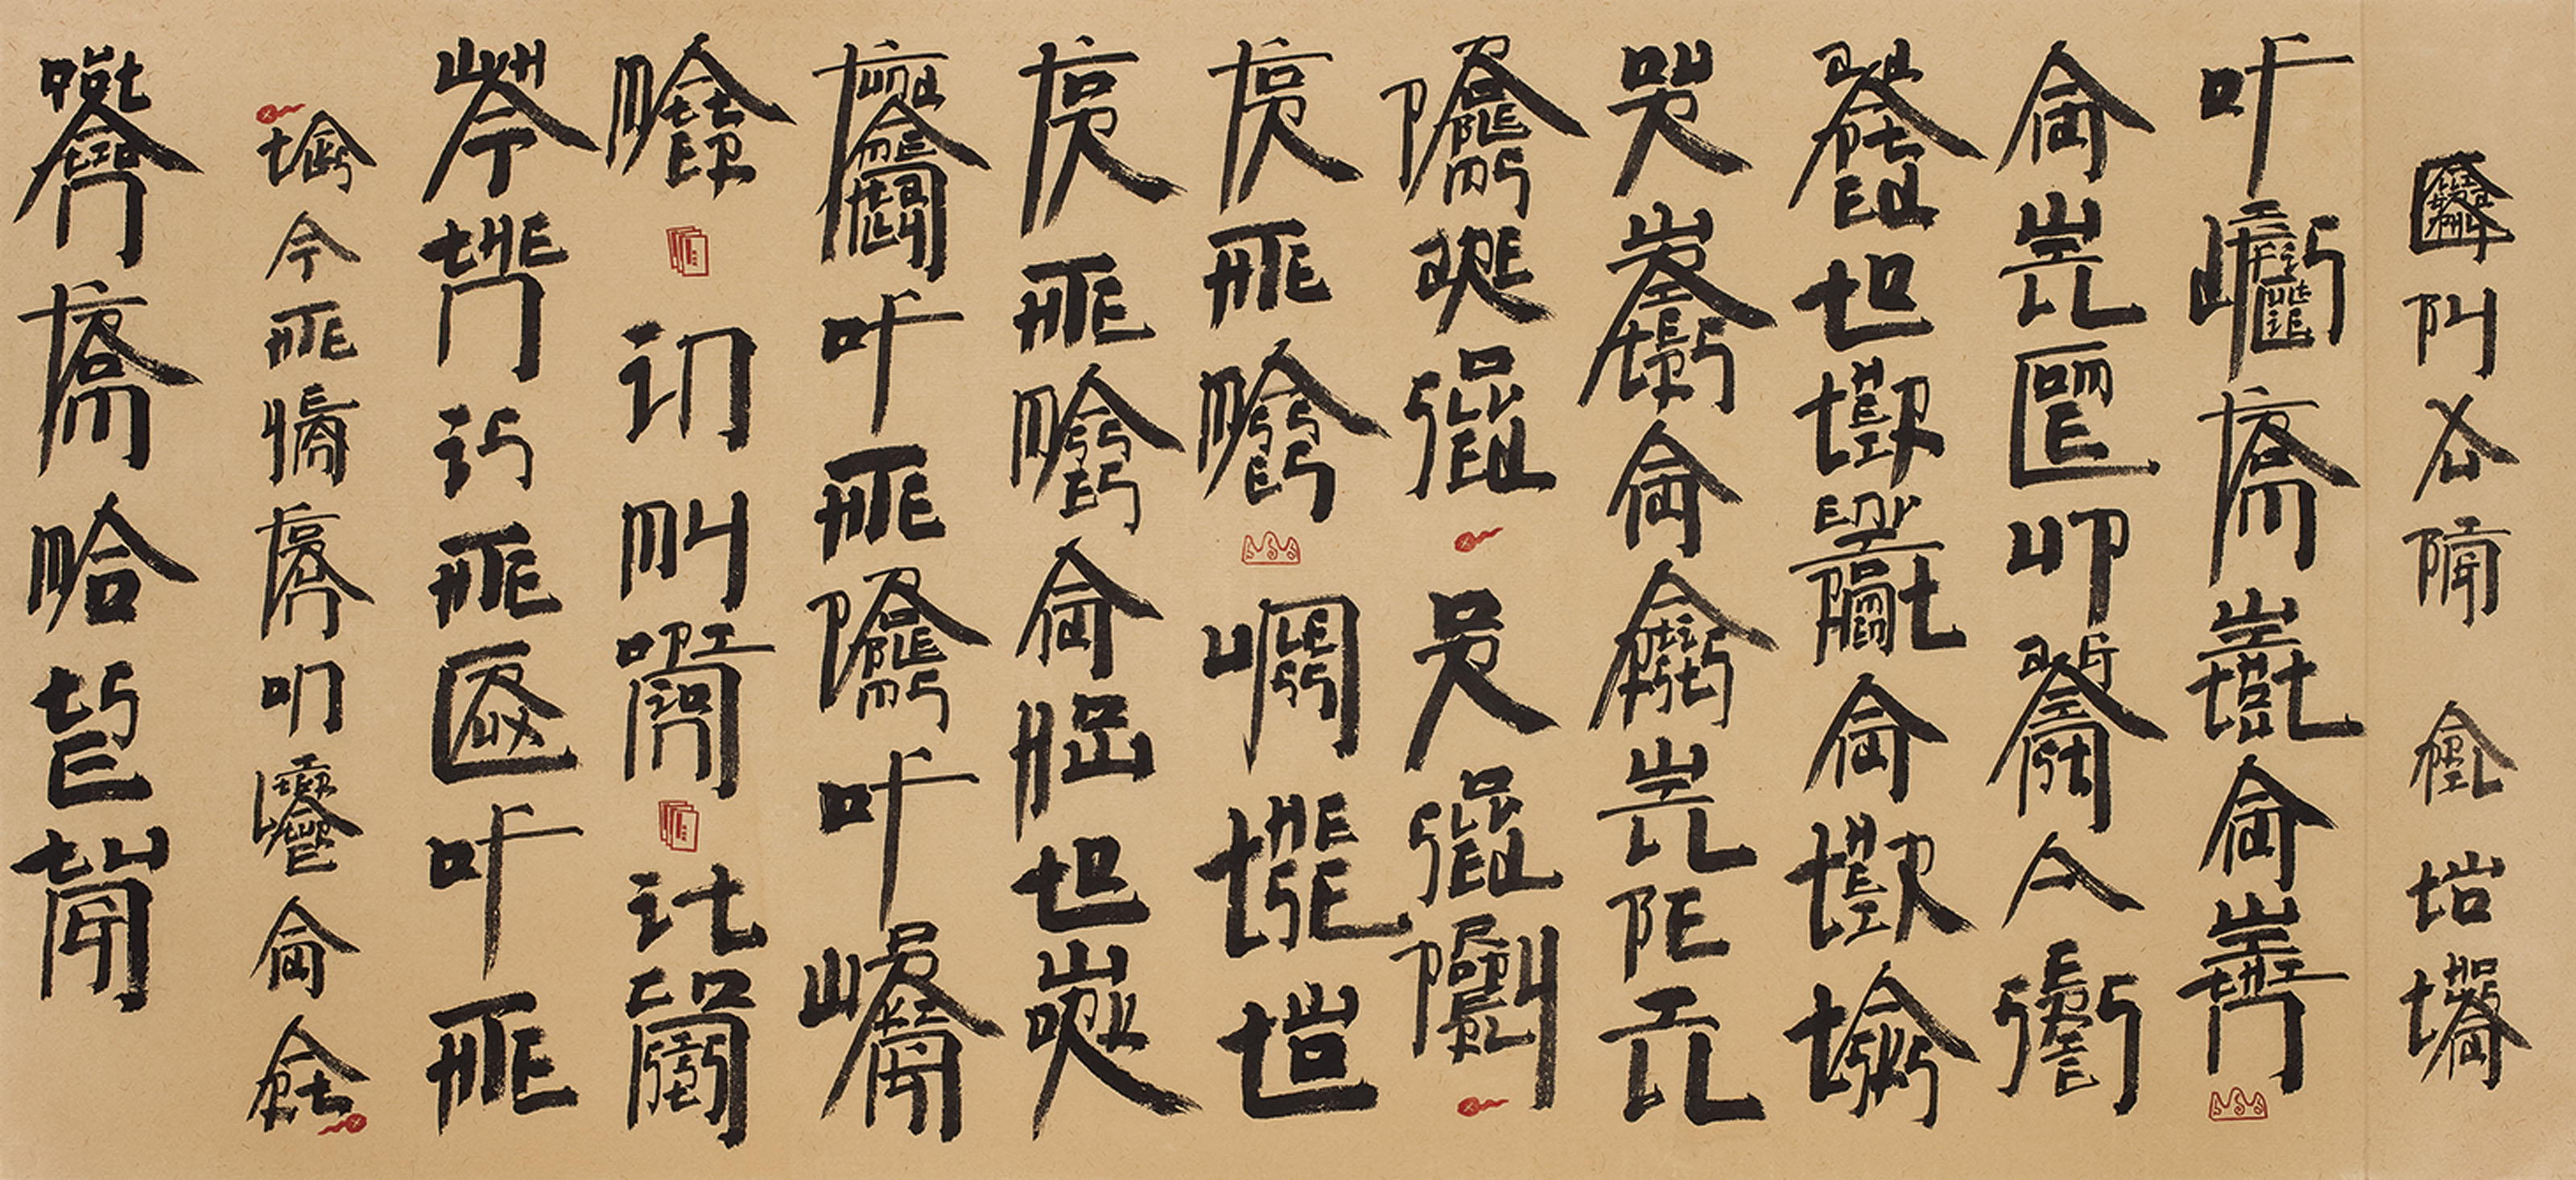 New English Calligraphy Series: Quotations from Chairman Mao